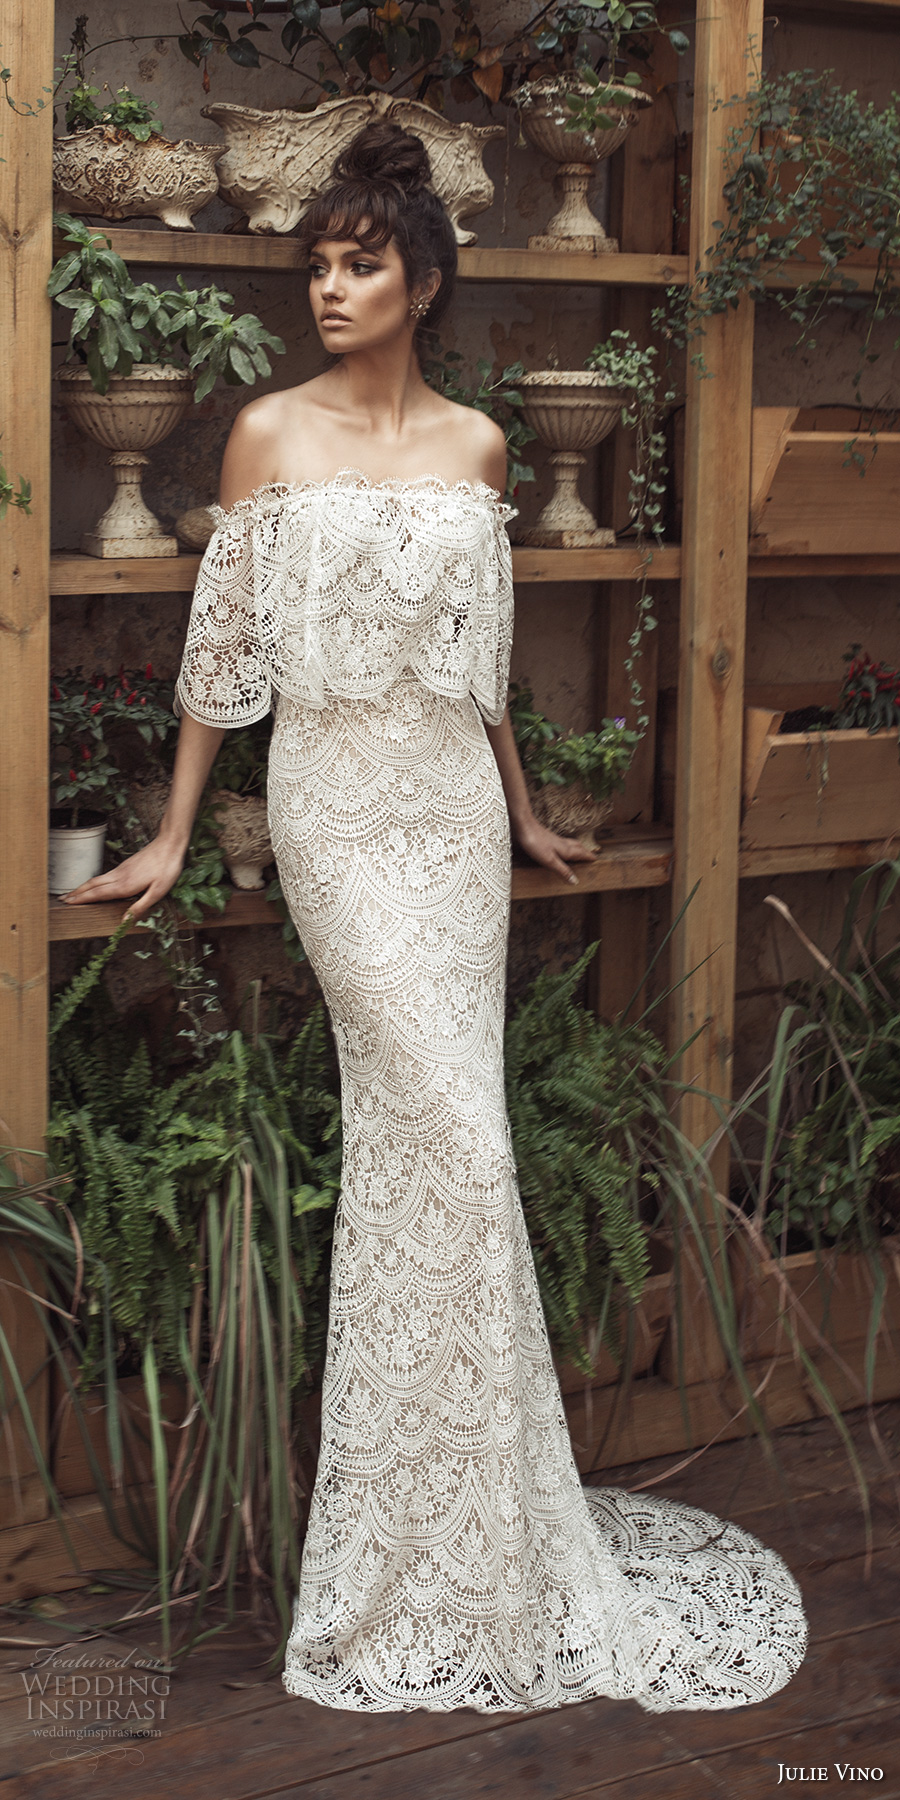 Famous Wedding Dress S London : Romanzo by julie vino wedding dresses inspirasi